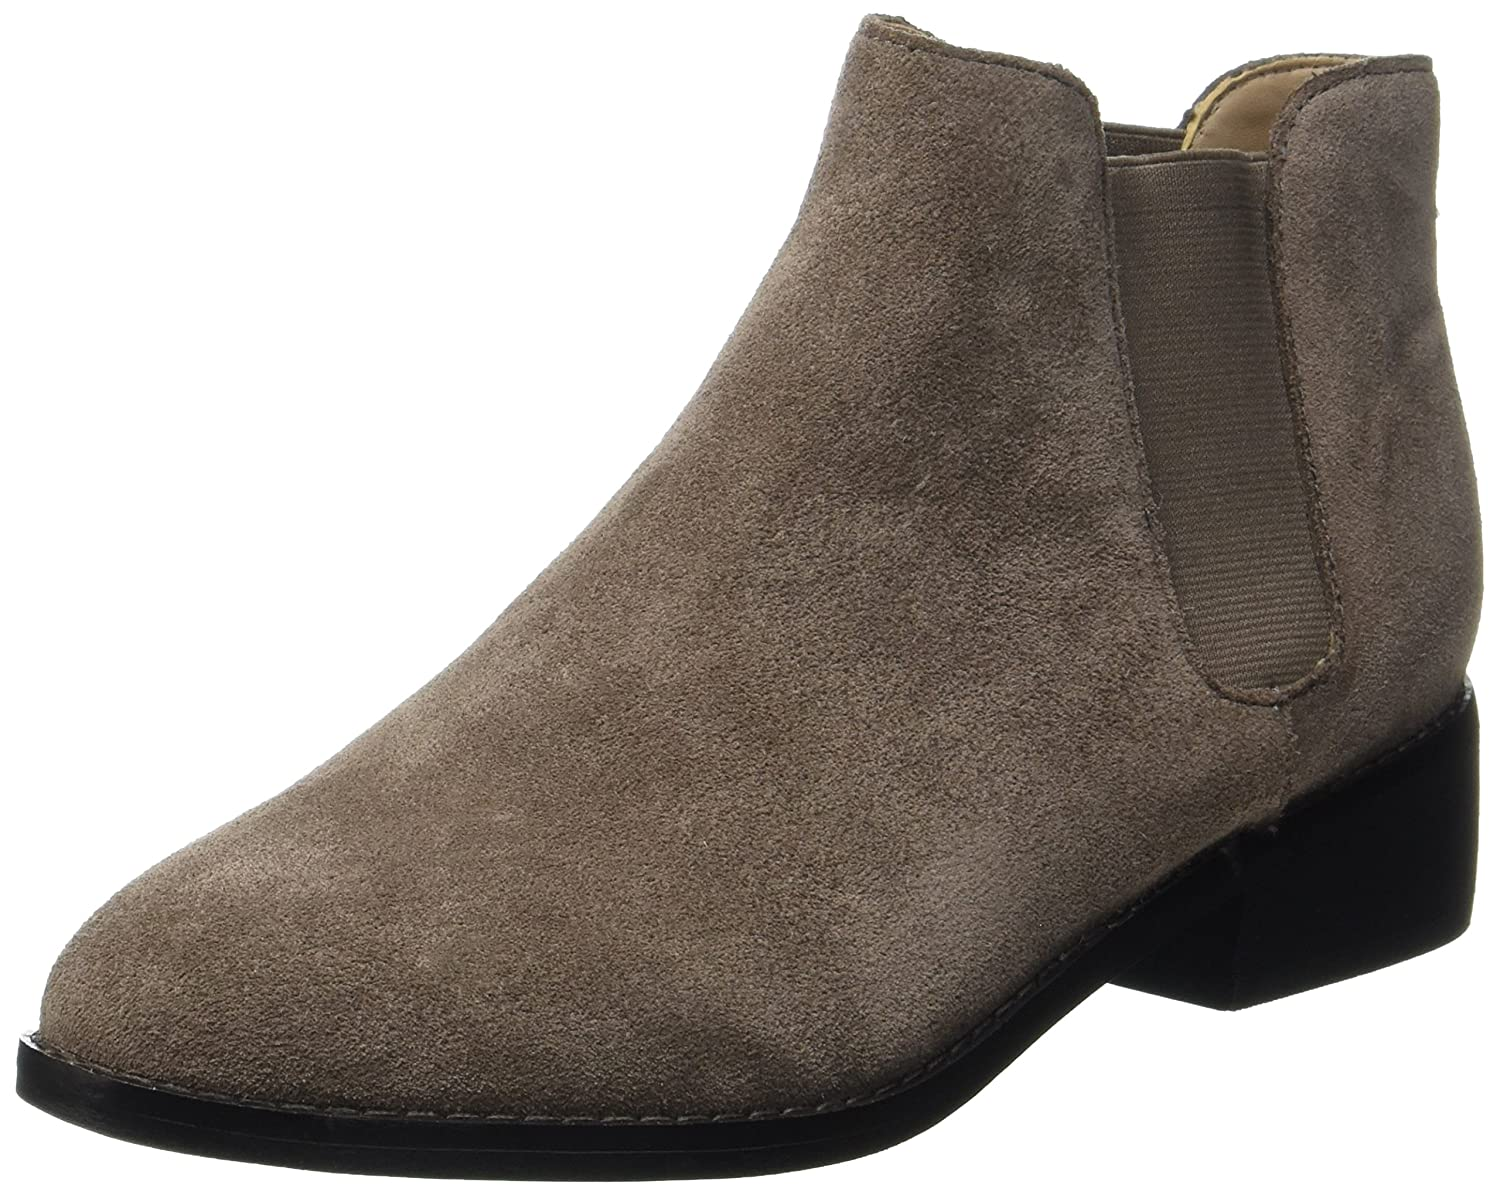 Buffalo Femme London 416-5201 Cow Suede, Bottes Femme 416-5201 Gris (Grey Suede, 01) b455bed - reprogrammed.space